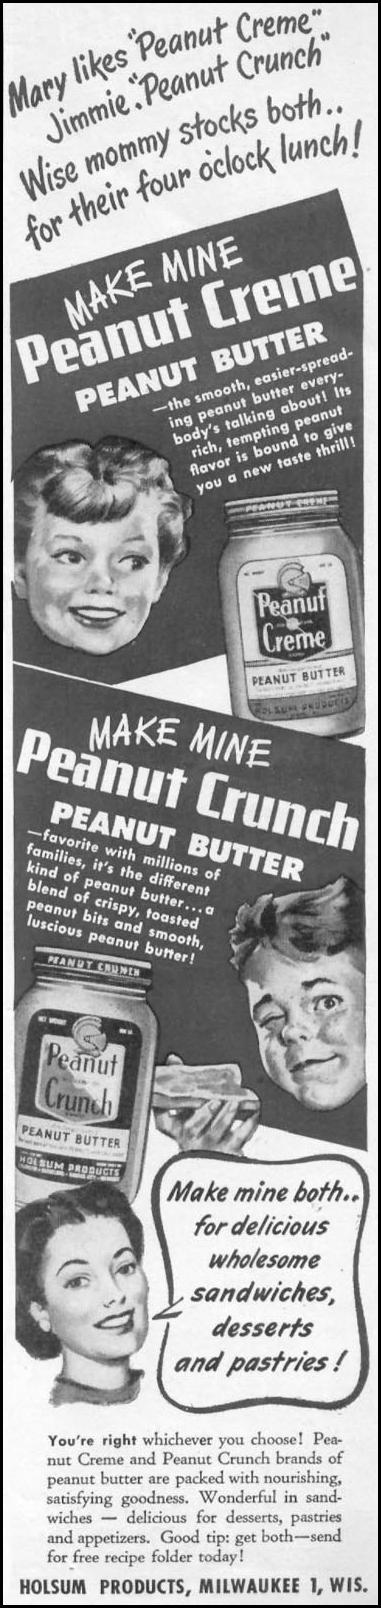 HOLSUM PEANUT BUTTER WOMAN'S DAY 05/01/1947 p. 11